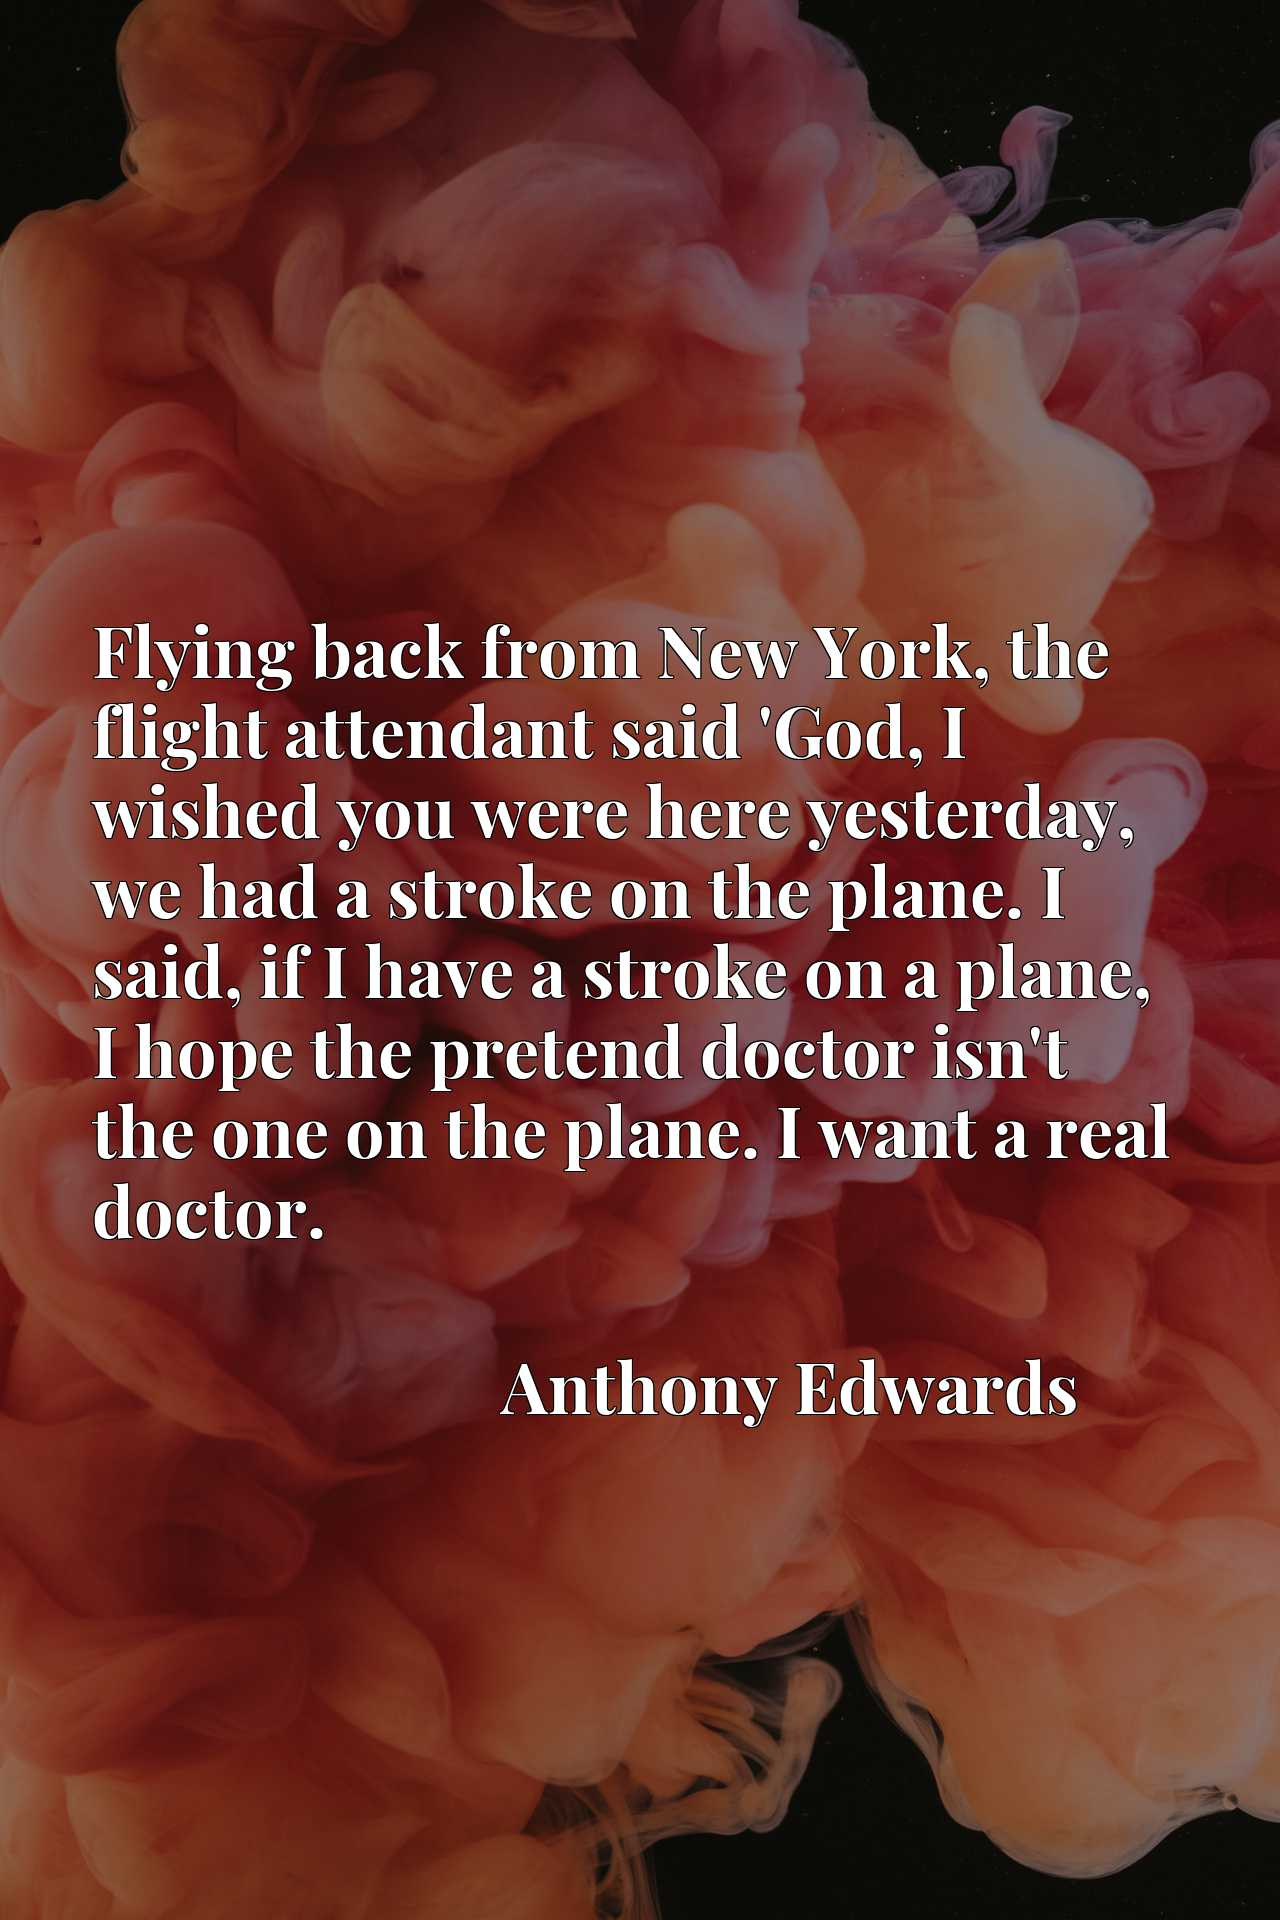 Flying back from New York, the flight attendant said 'God, I wished you were here yesterday, we had a stroke on the plane. I said, if I have a stroke on a plane, I hope the pretend doctor isn't the one on the plane. I want a real doctor.